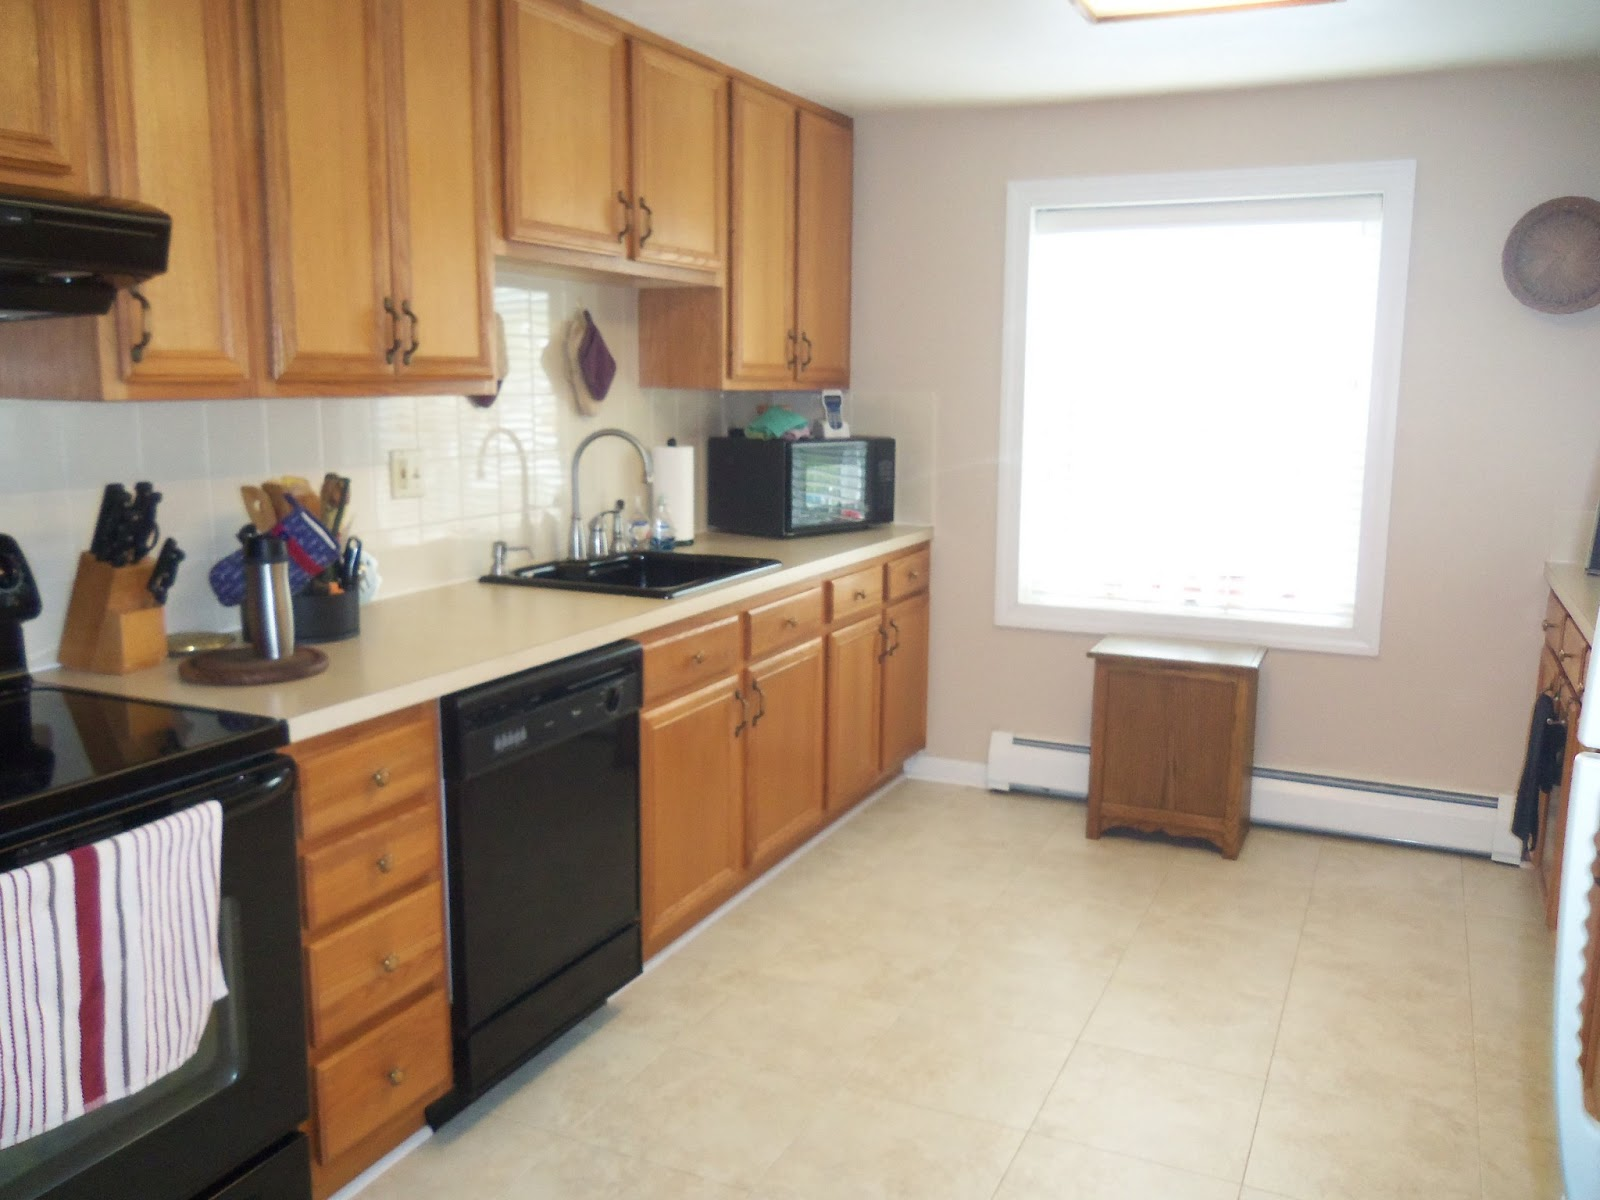 Wheelchair accessible home in fairless hills pa for sale Handicapped accessible homes for sale